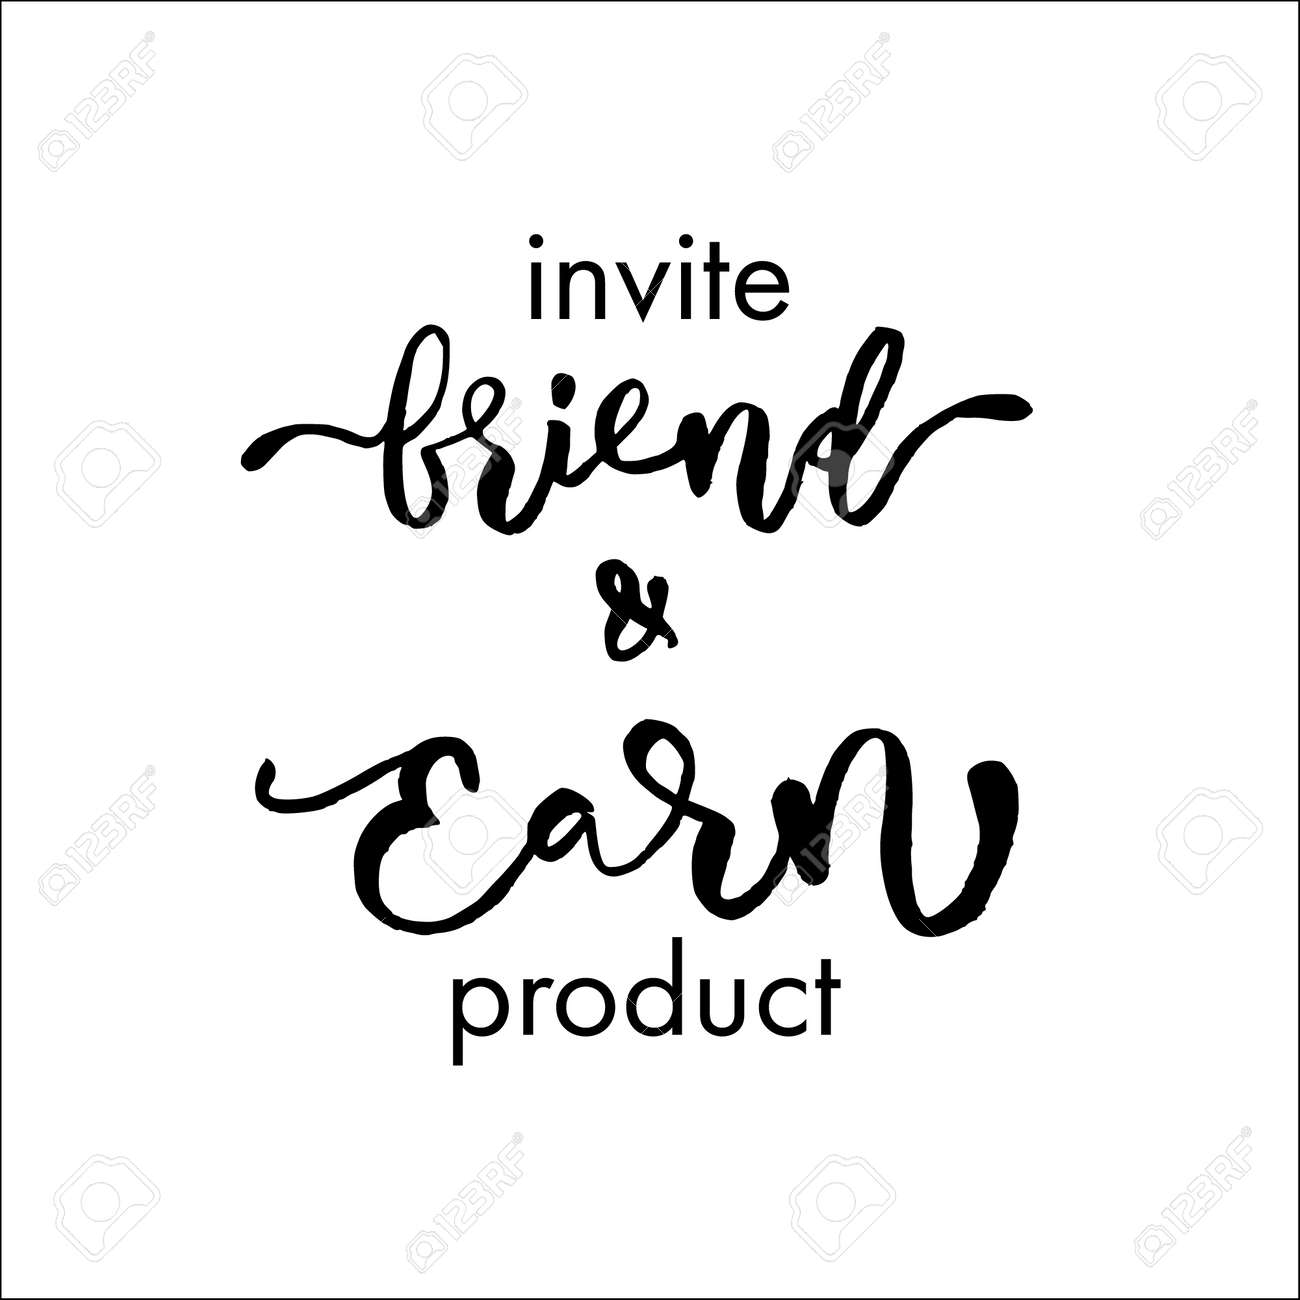 Refer a friend vector lettering. Referral marketing phrase isolated on white background. Handwritten brush pen calligraphy poster for loyalty program. Attract customers flyer. Start referring, invite - 131442233